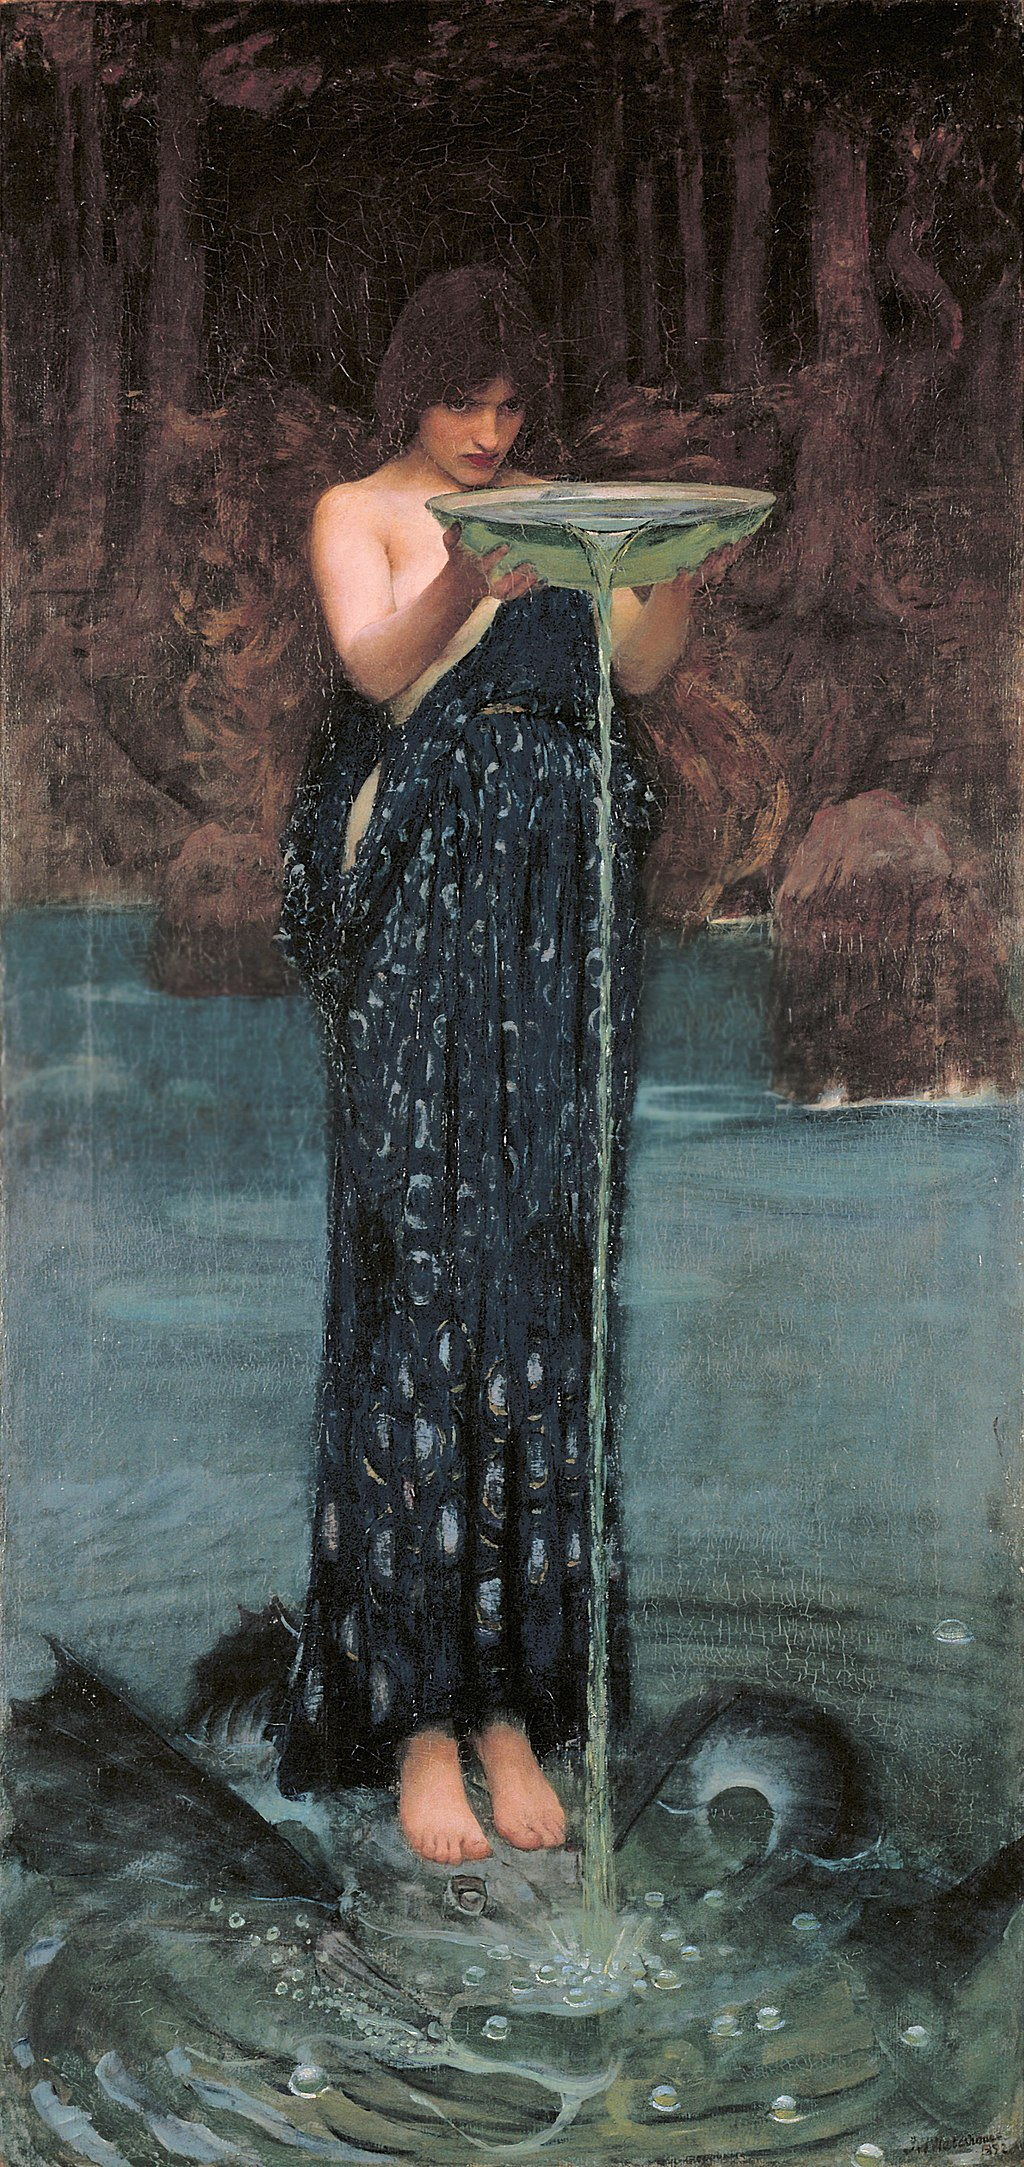 """Circe Invidiosa"" by John William Waterhouse"